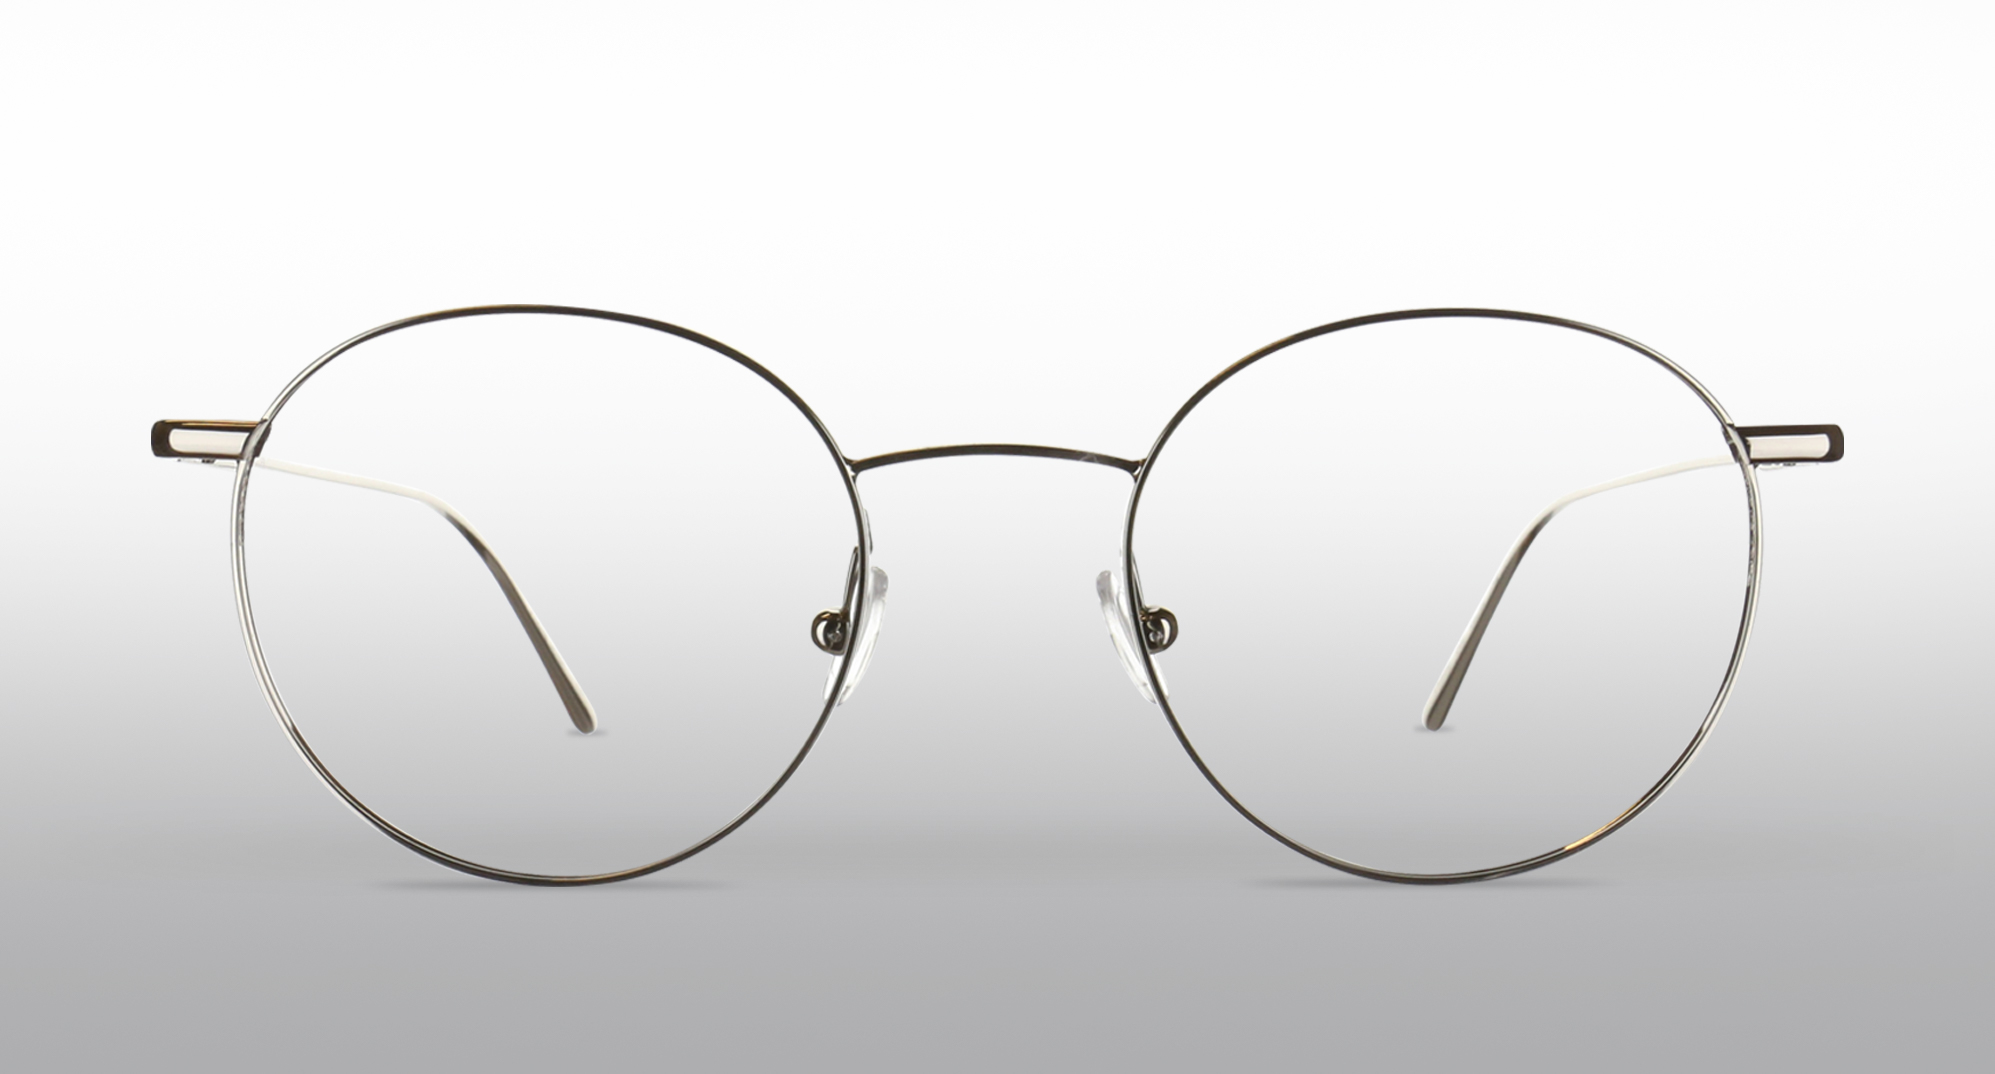 Pair of round metal glasses